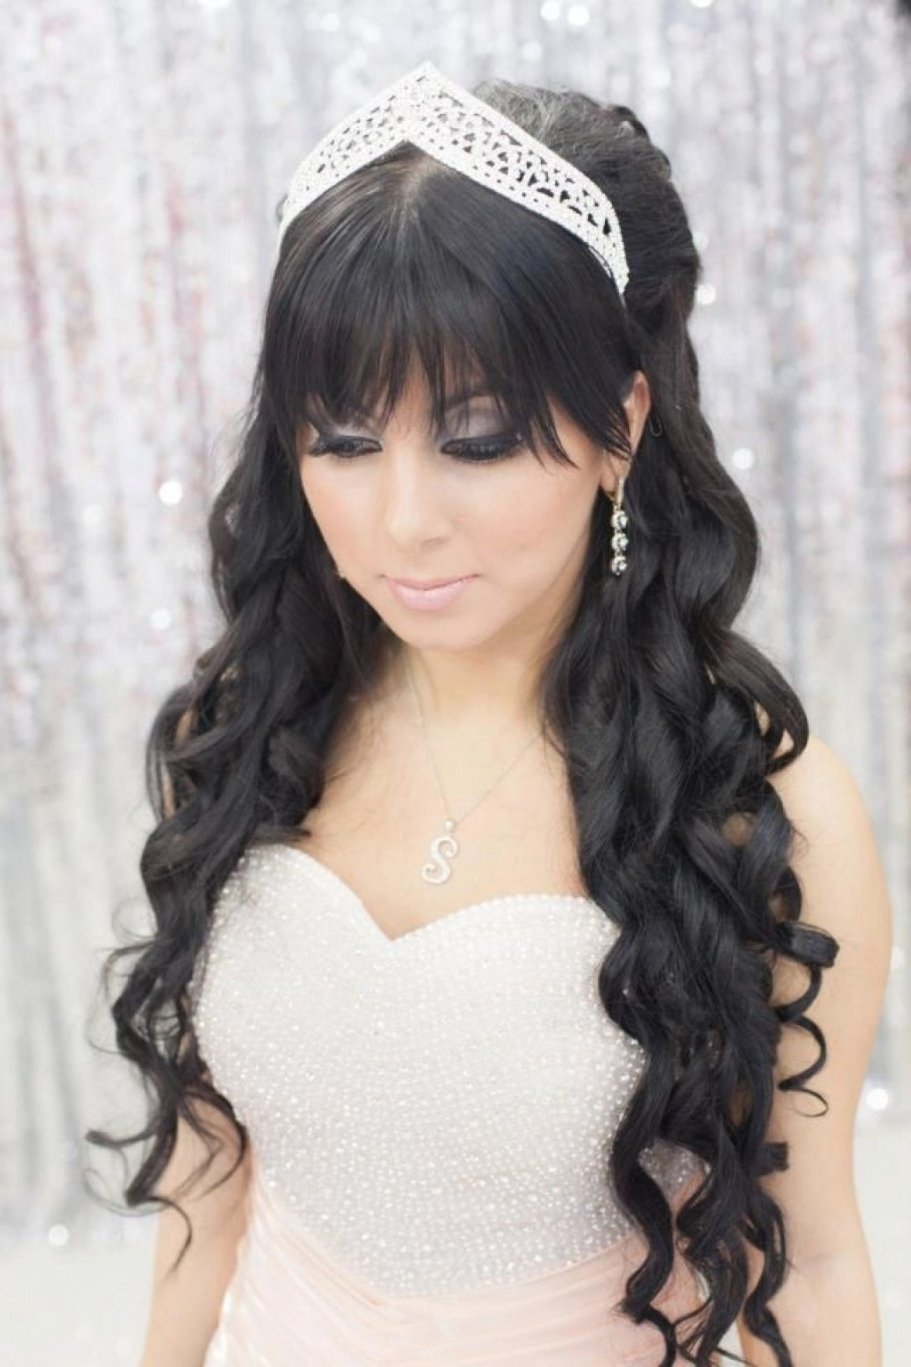 Bridal Hairstyle For Long Straight Hair Fade Haircut 50Th Wedding Inside Well Liked Wedding Hairstyles For Long Straight Hair (View 3 of 15)